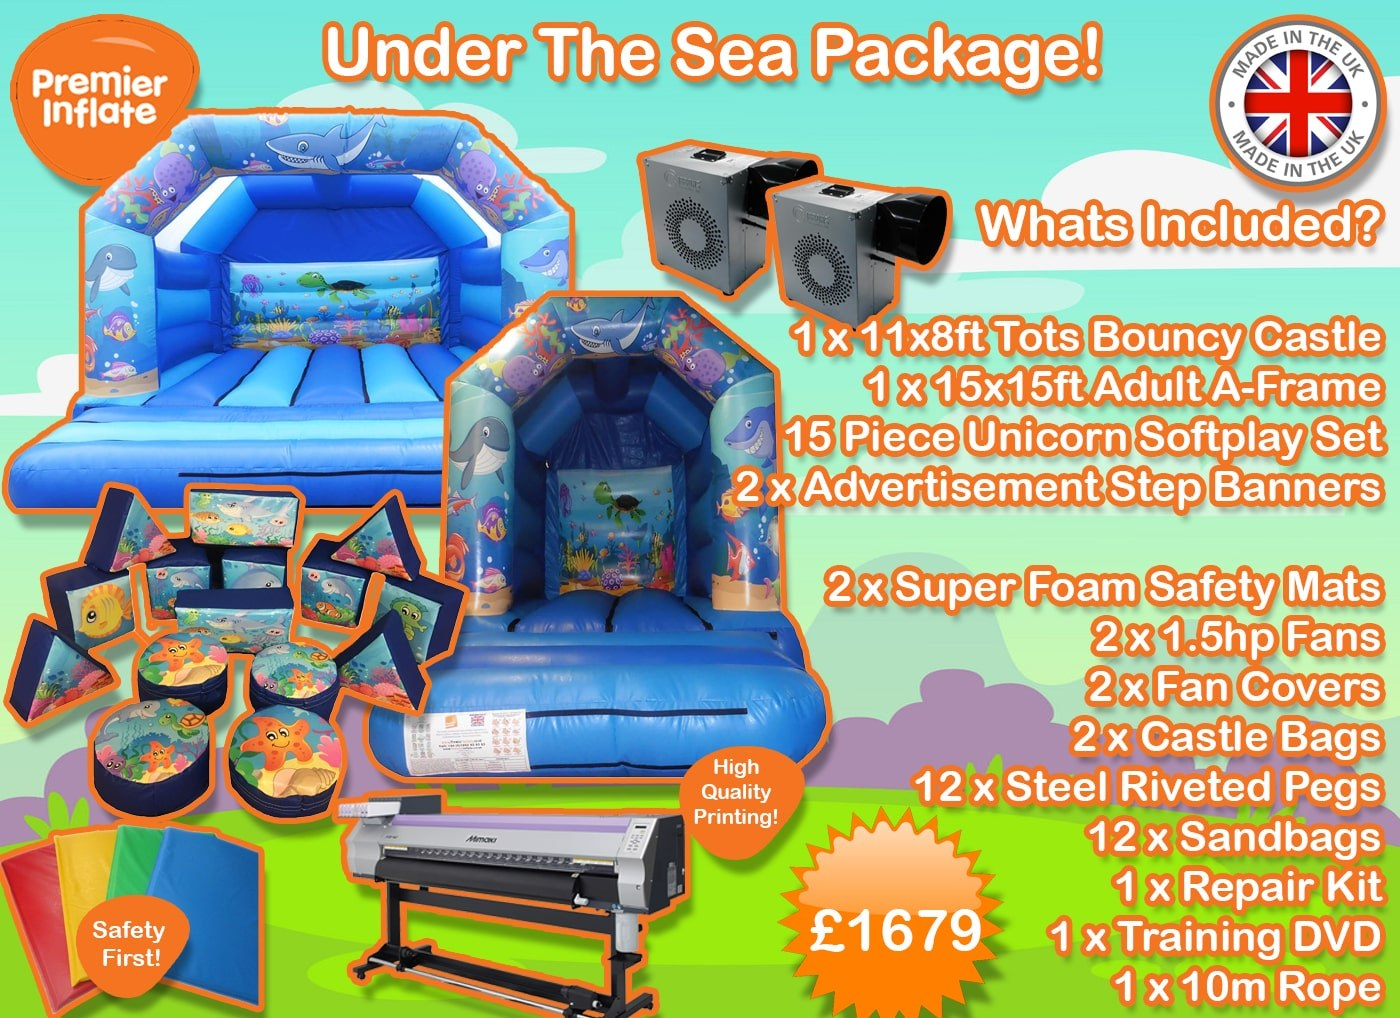 Under The Sea bouncy castles for sale package deal min